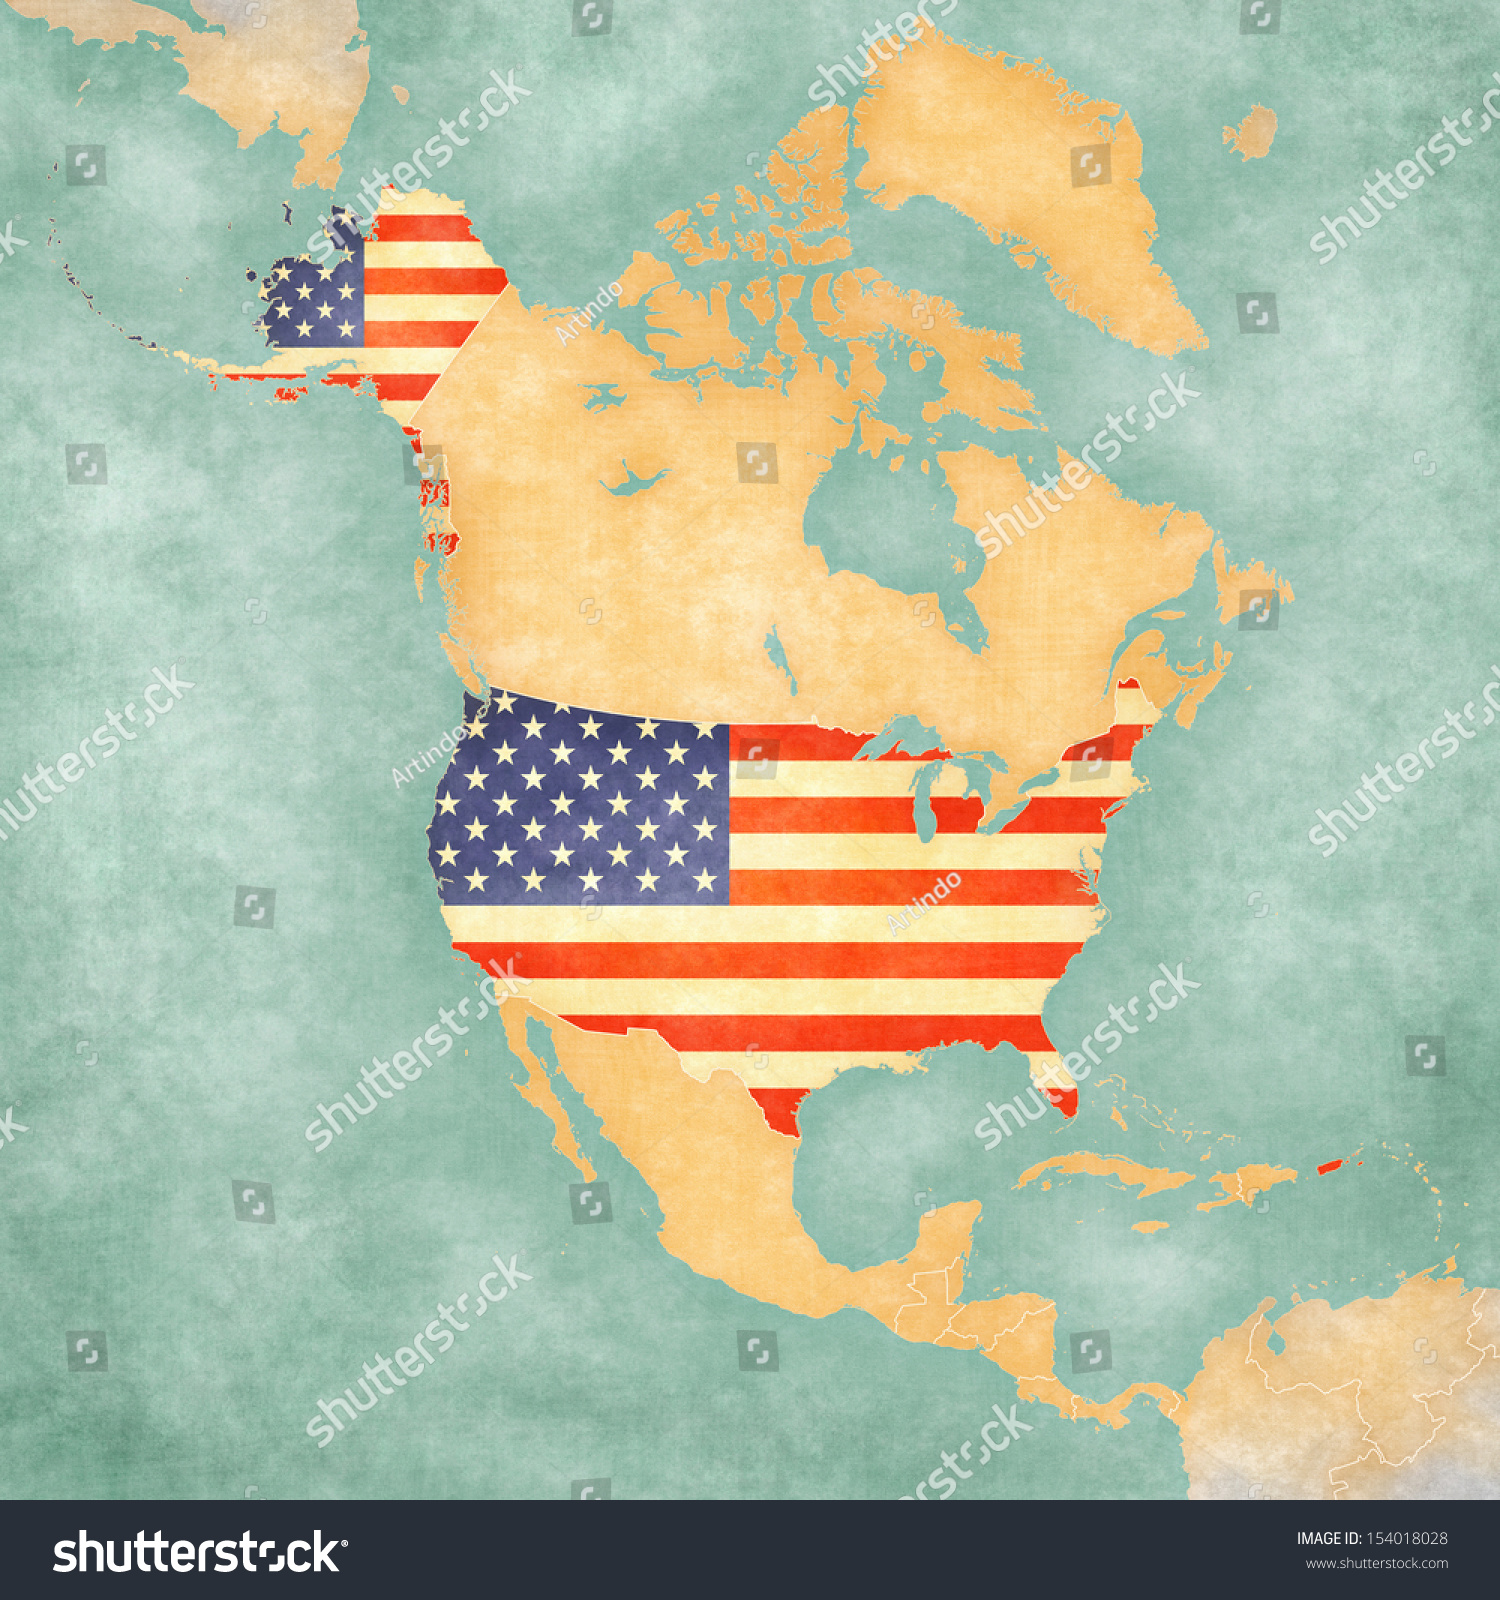 Usa American Flag On Outline Map Stock